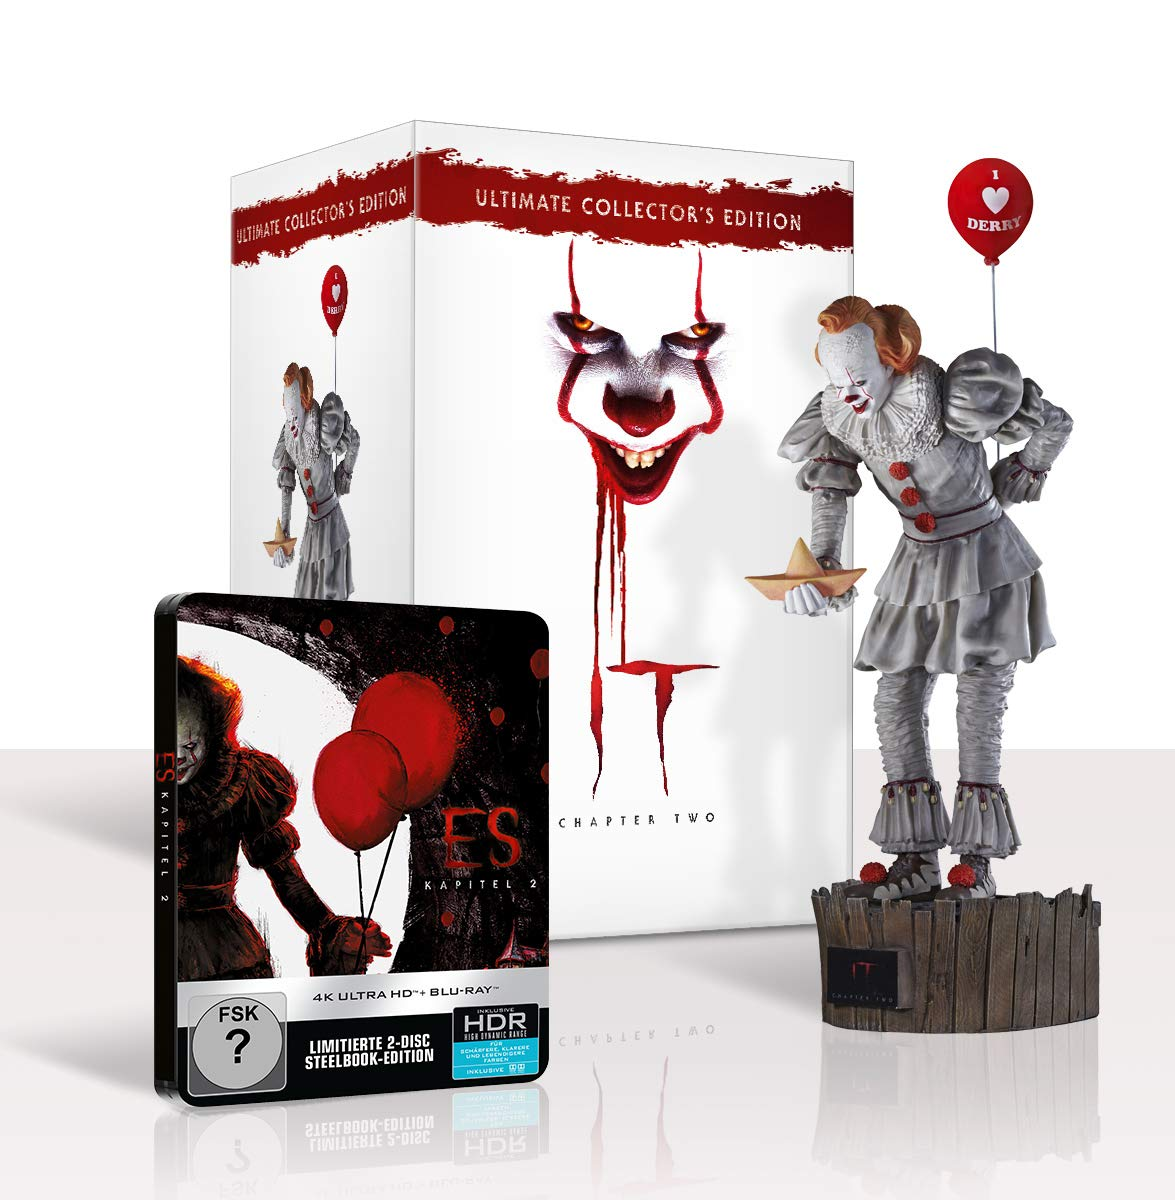 COF.IT CAPITOLO 2 (4K ULTRA HD + BLU-RAY) + STATUA PENNYWISE (3